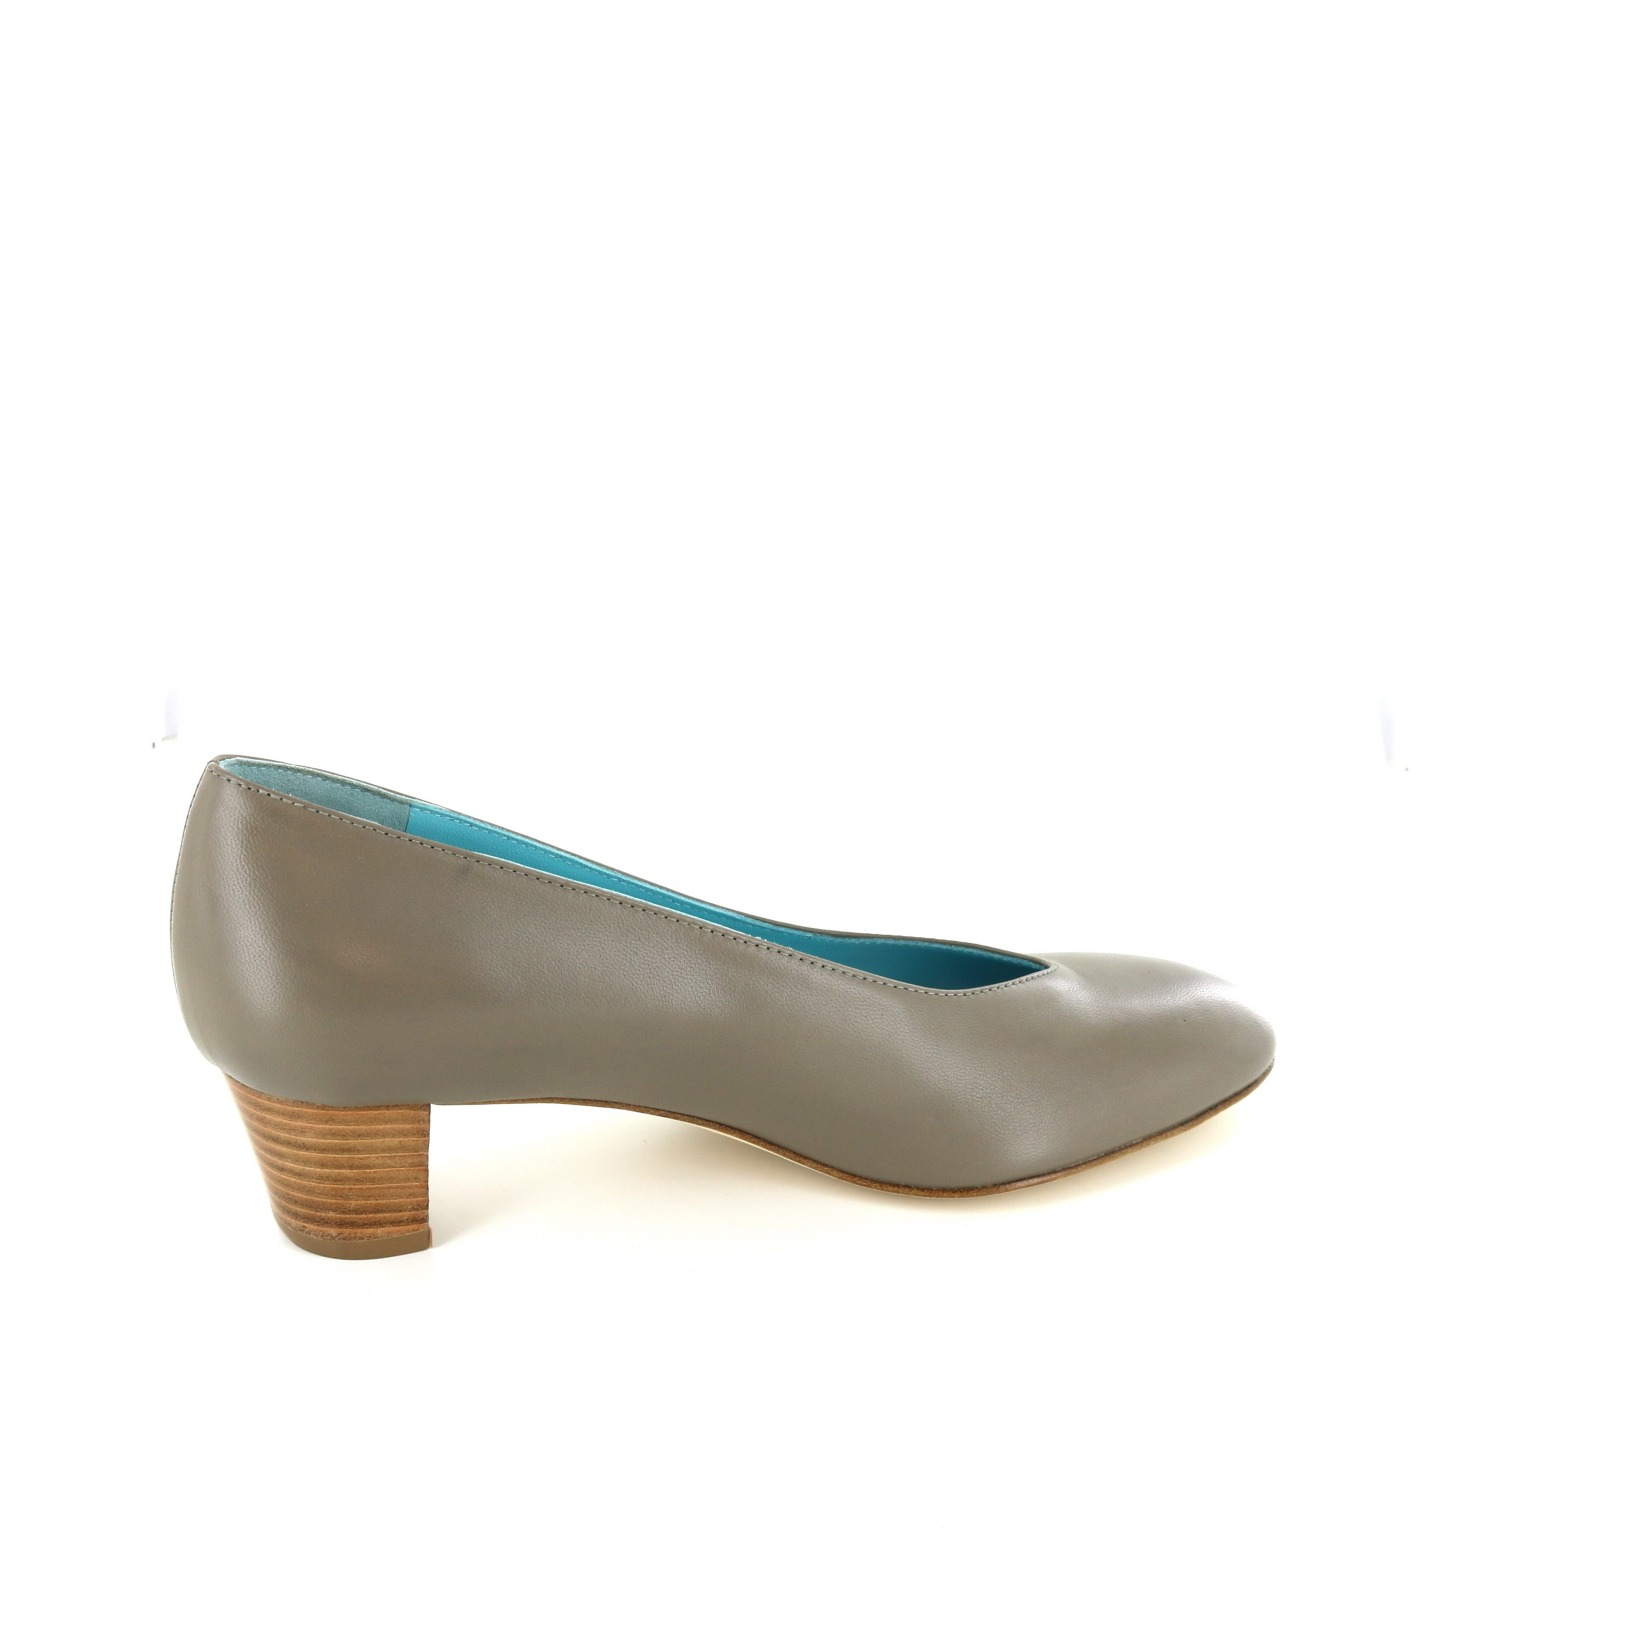 THIERRY RABOTIN / Pumps, taupe